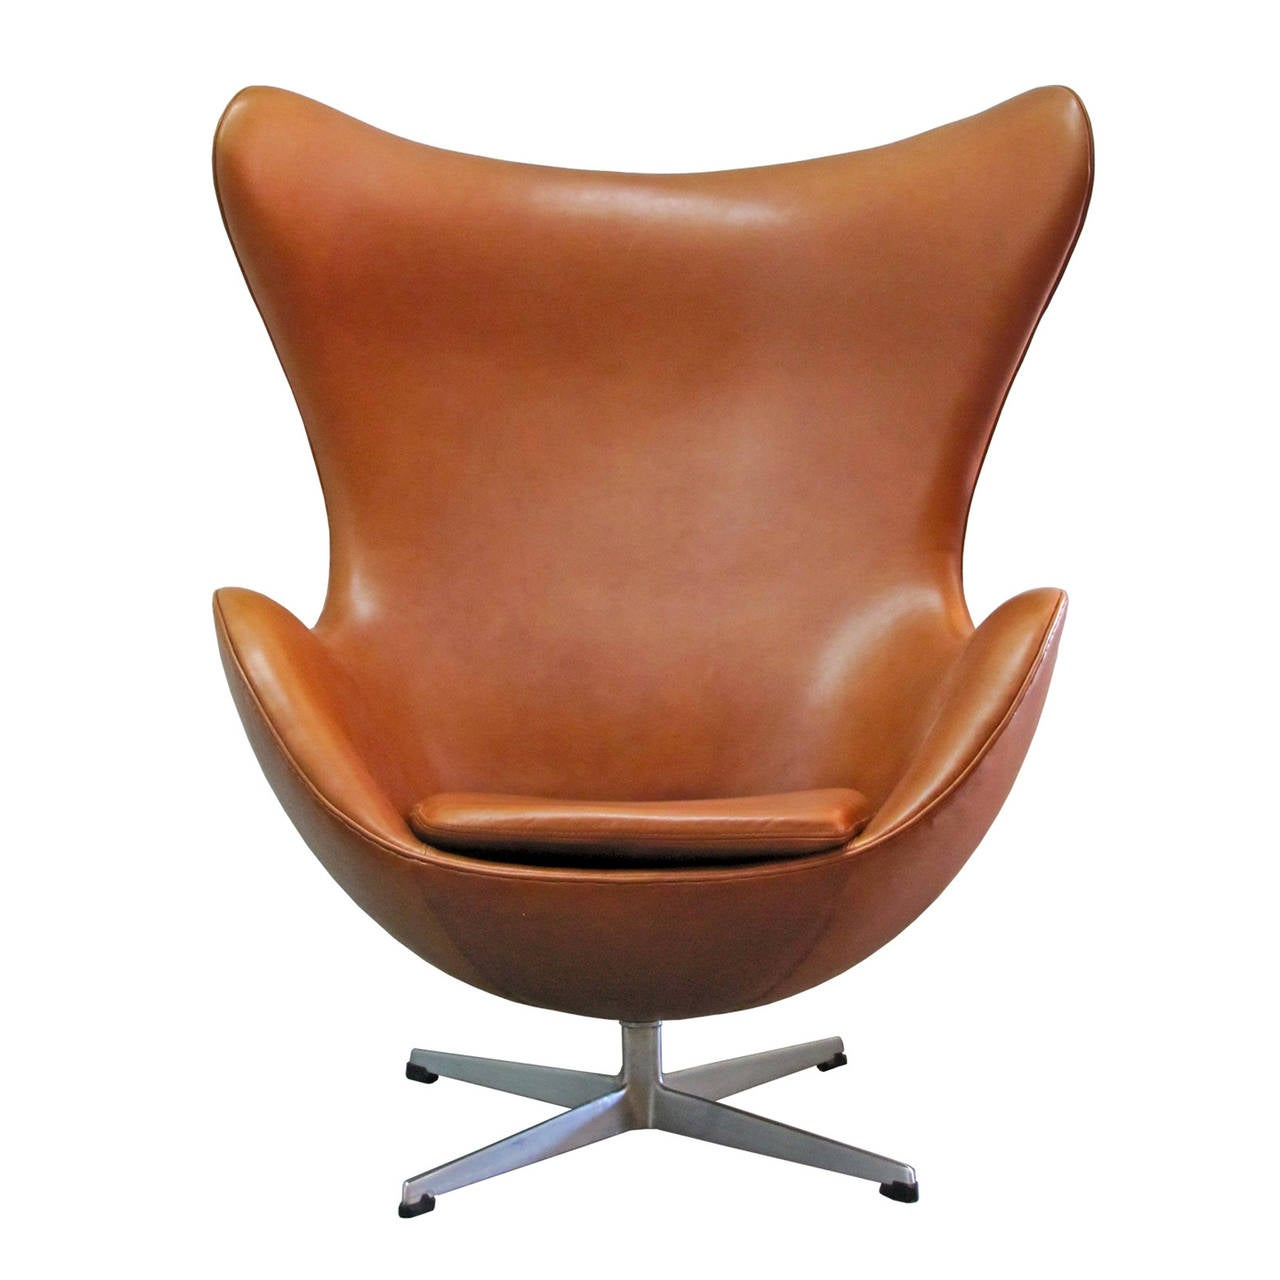 Egg Chairs Arne Jacobsen Egg Chair At 1stdibs